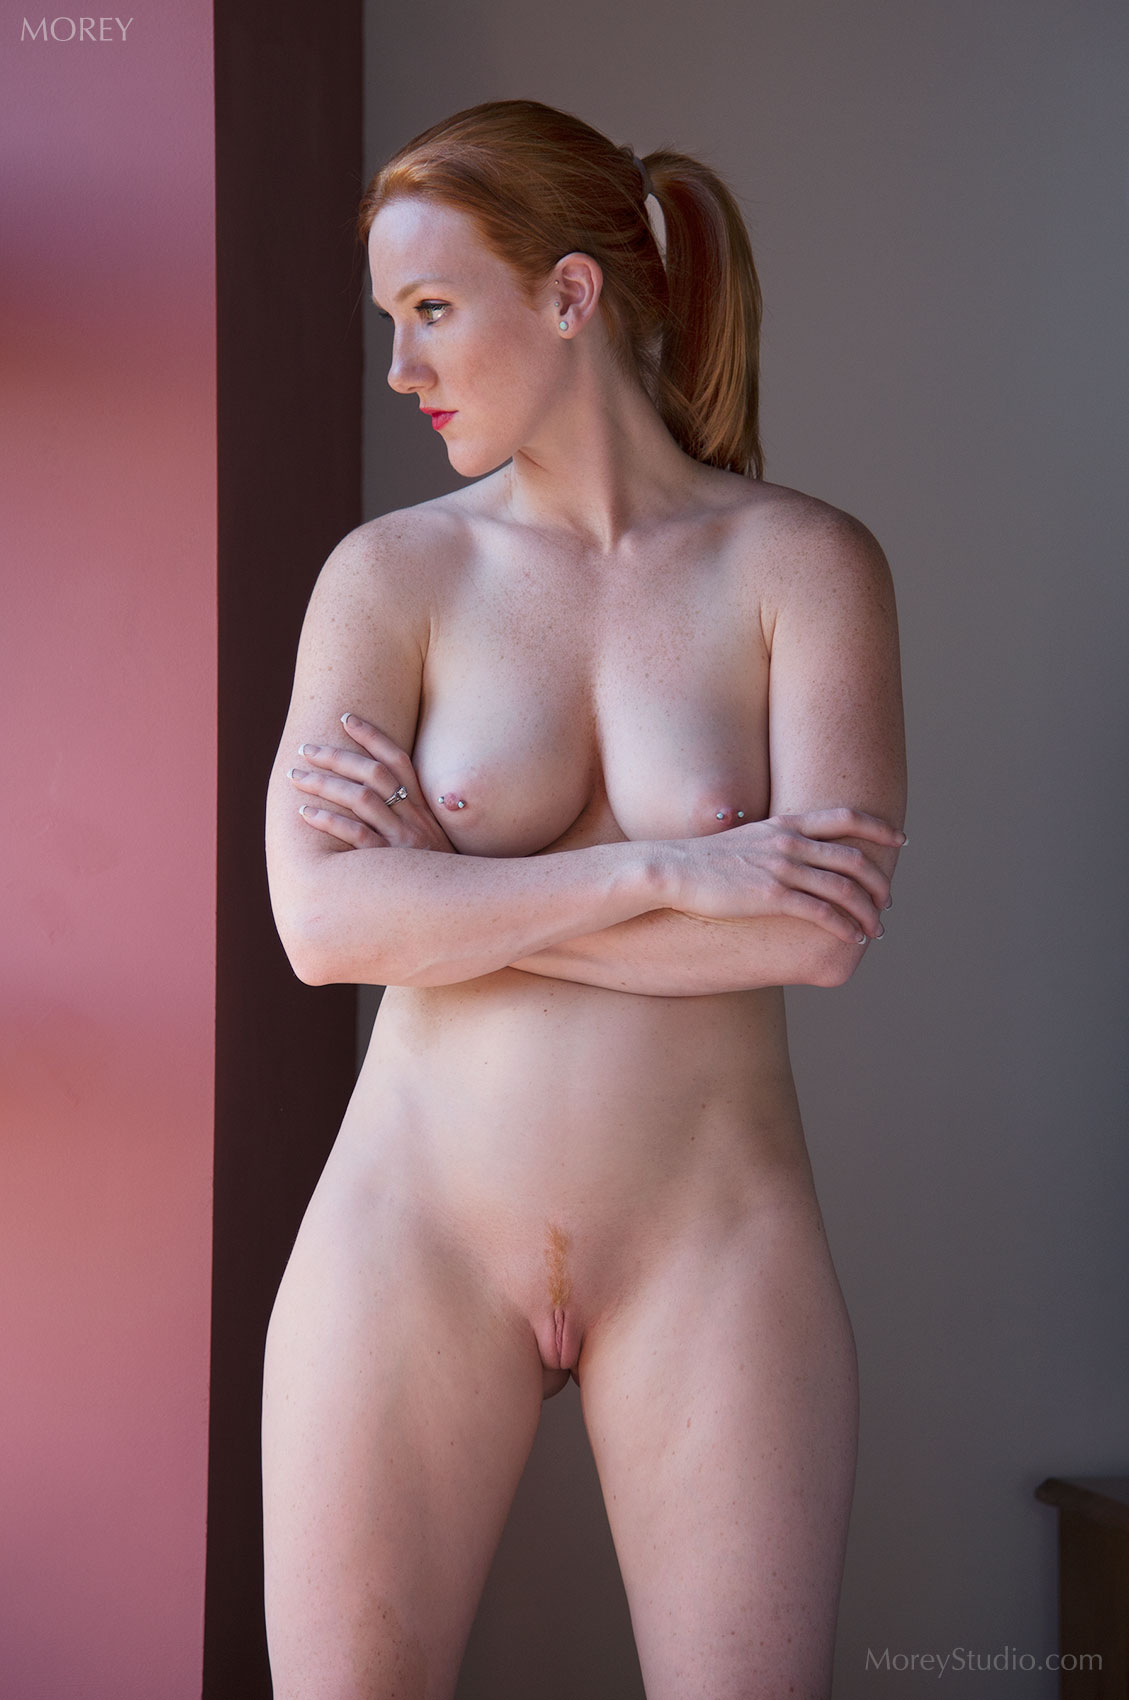 hot guy gets red ass spanking punishment DariaBulavina Redhead Ginger Freckles FreckledChest Palenipples Collarbones Cumvalley GreatRack